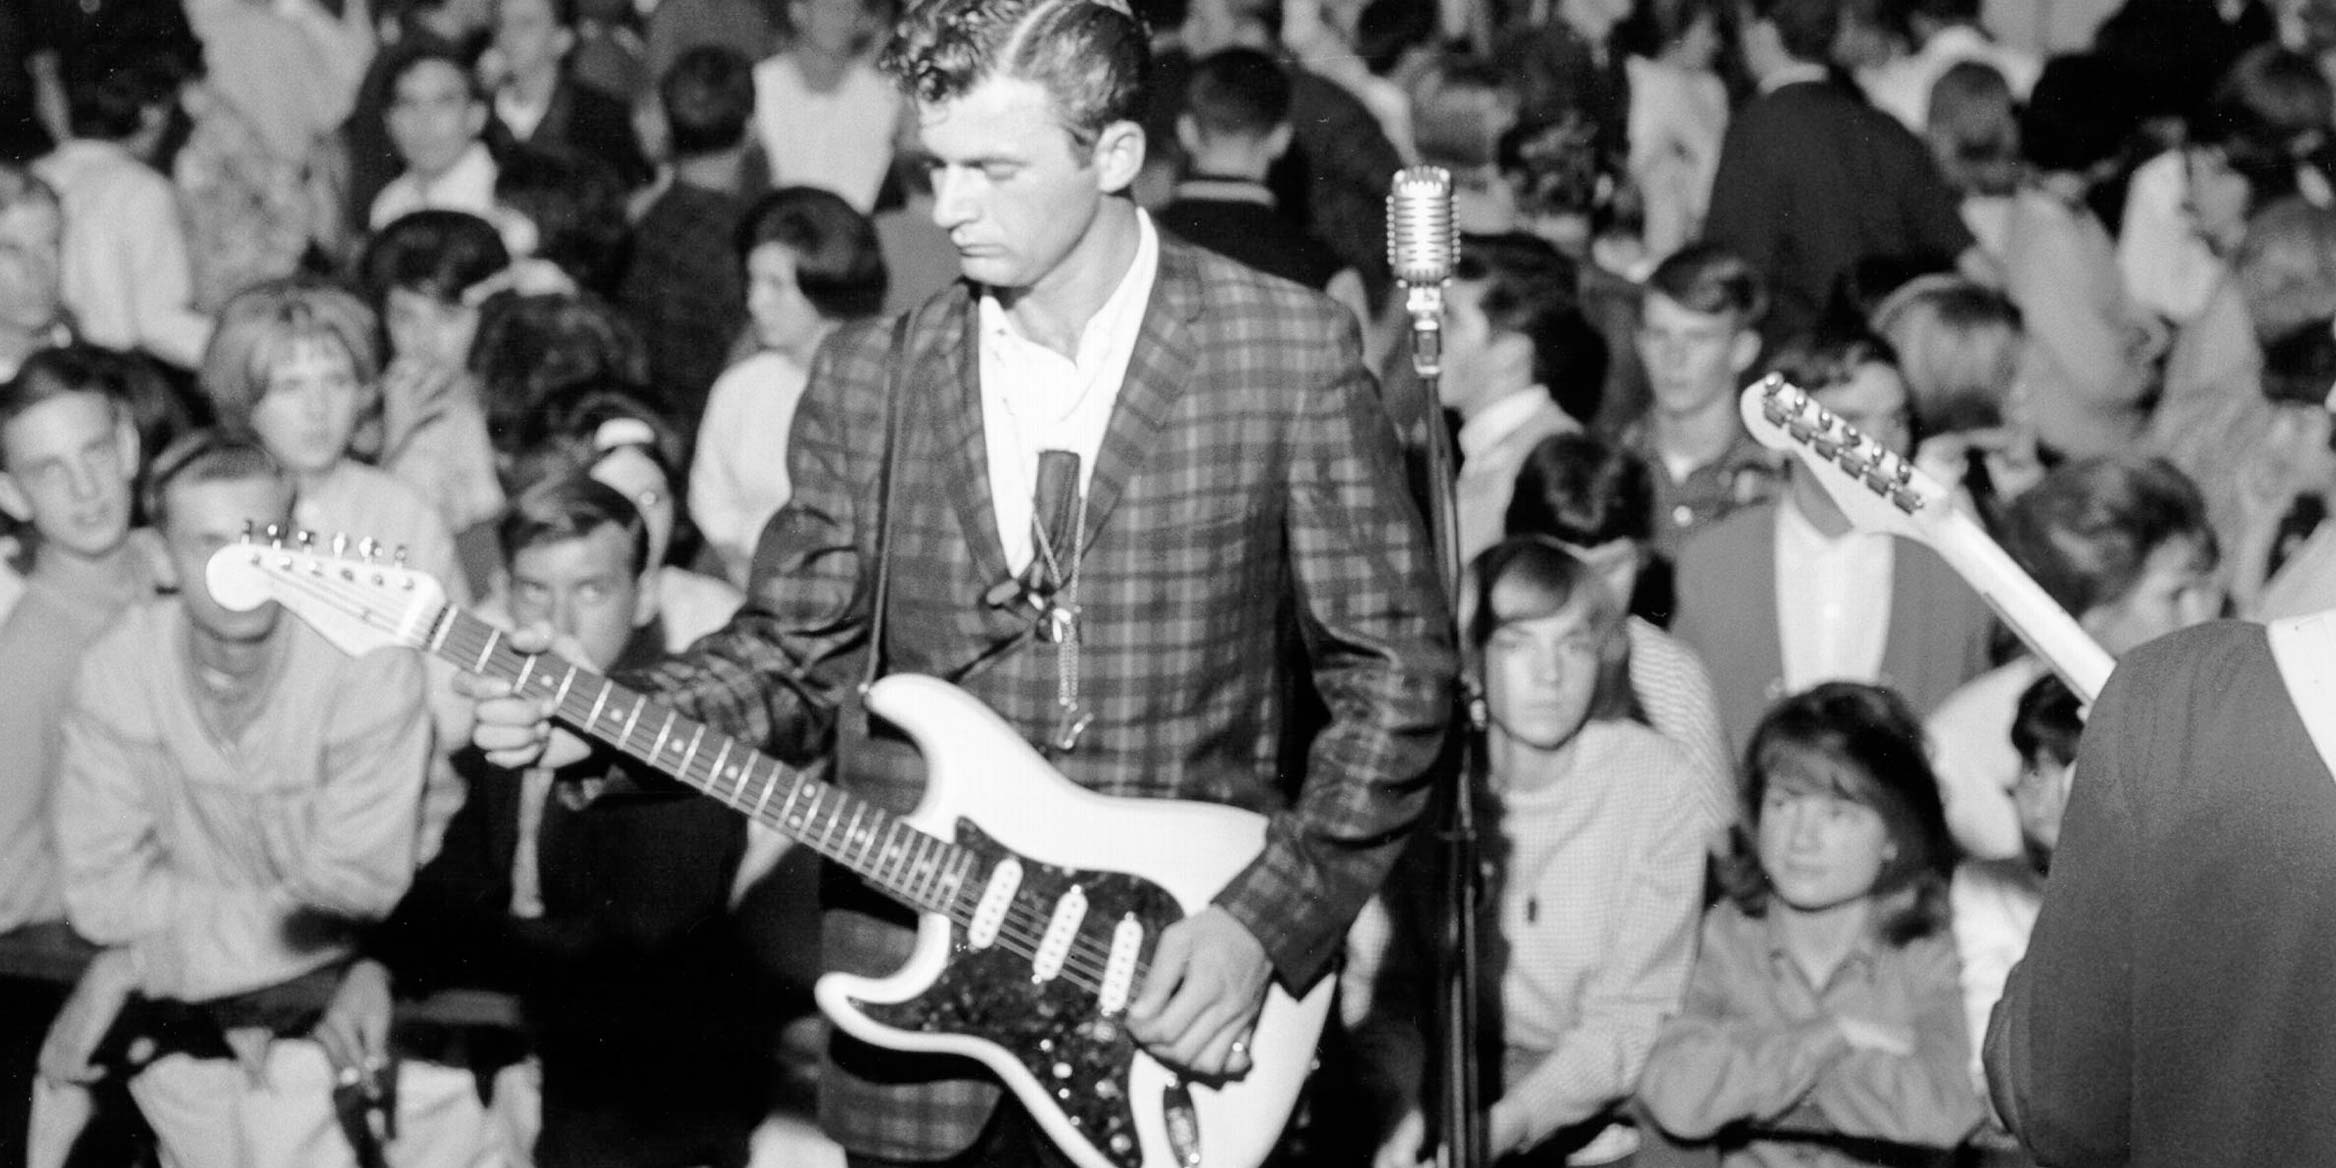 Dick dale and the suggest you